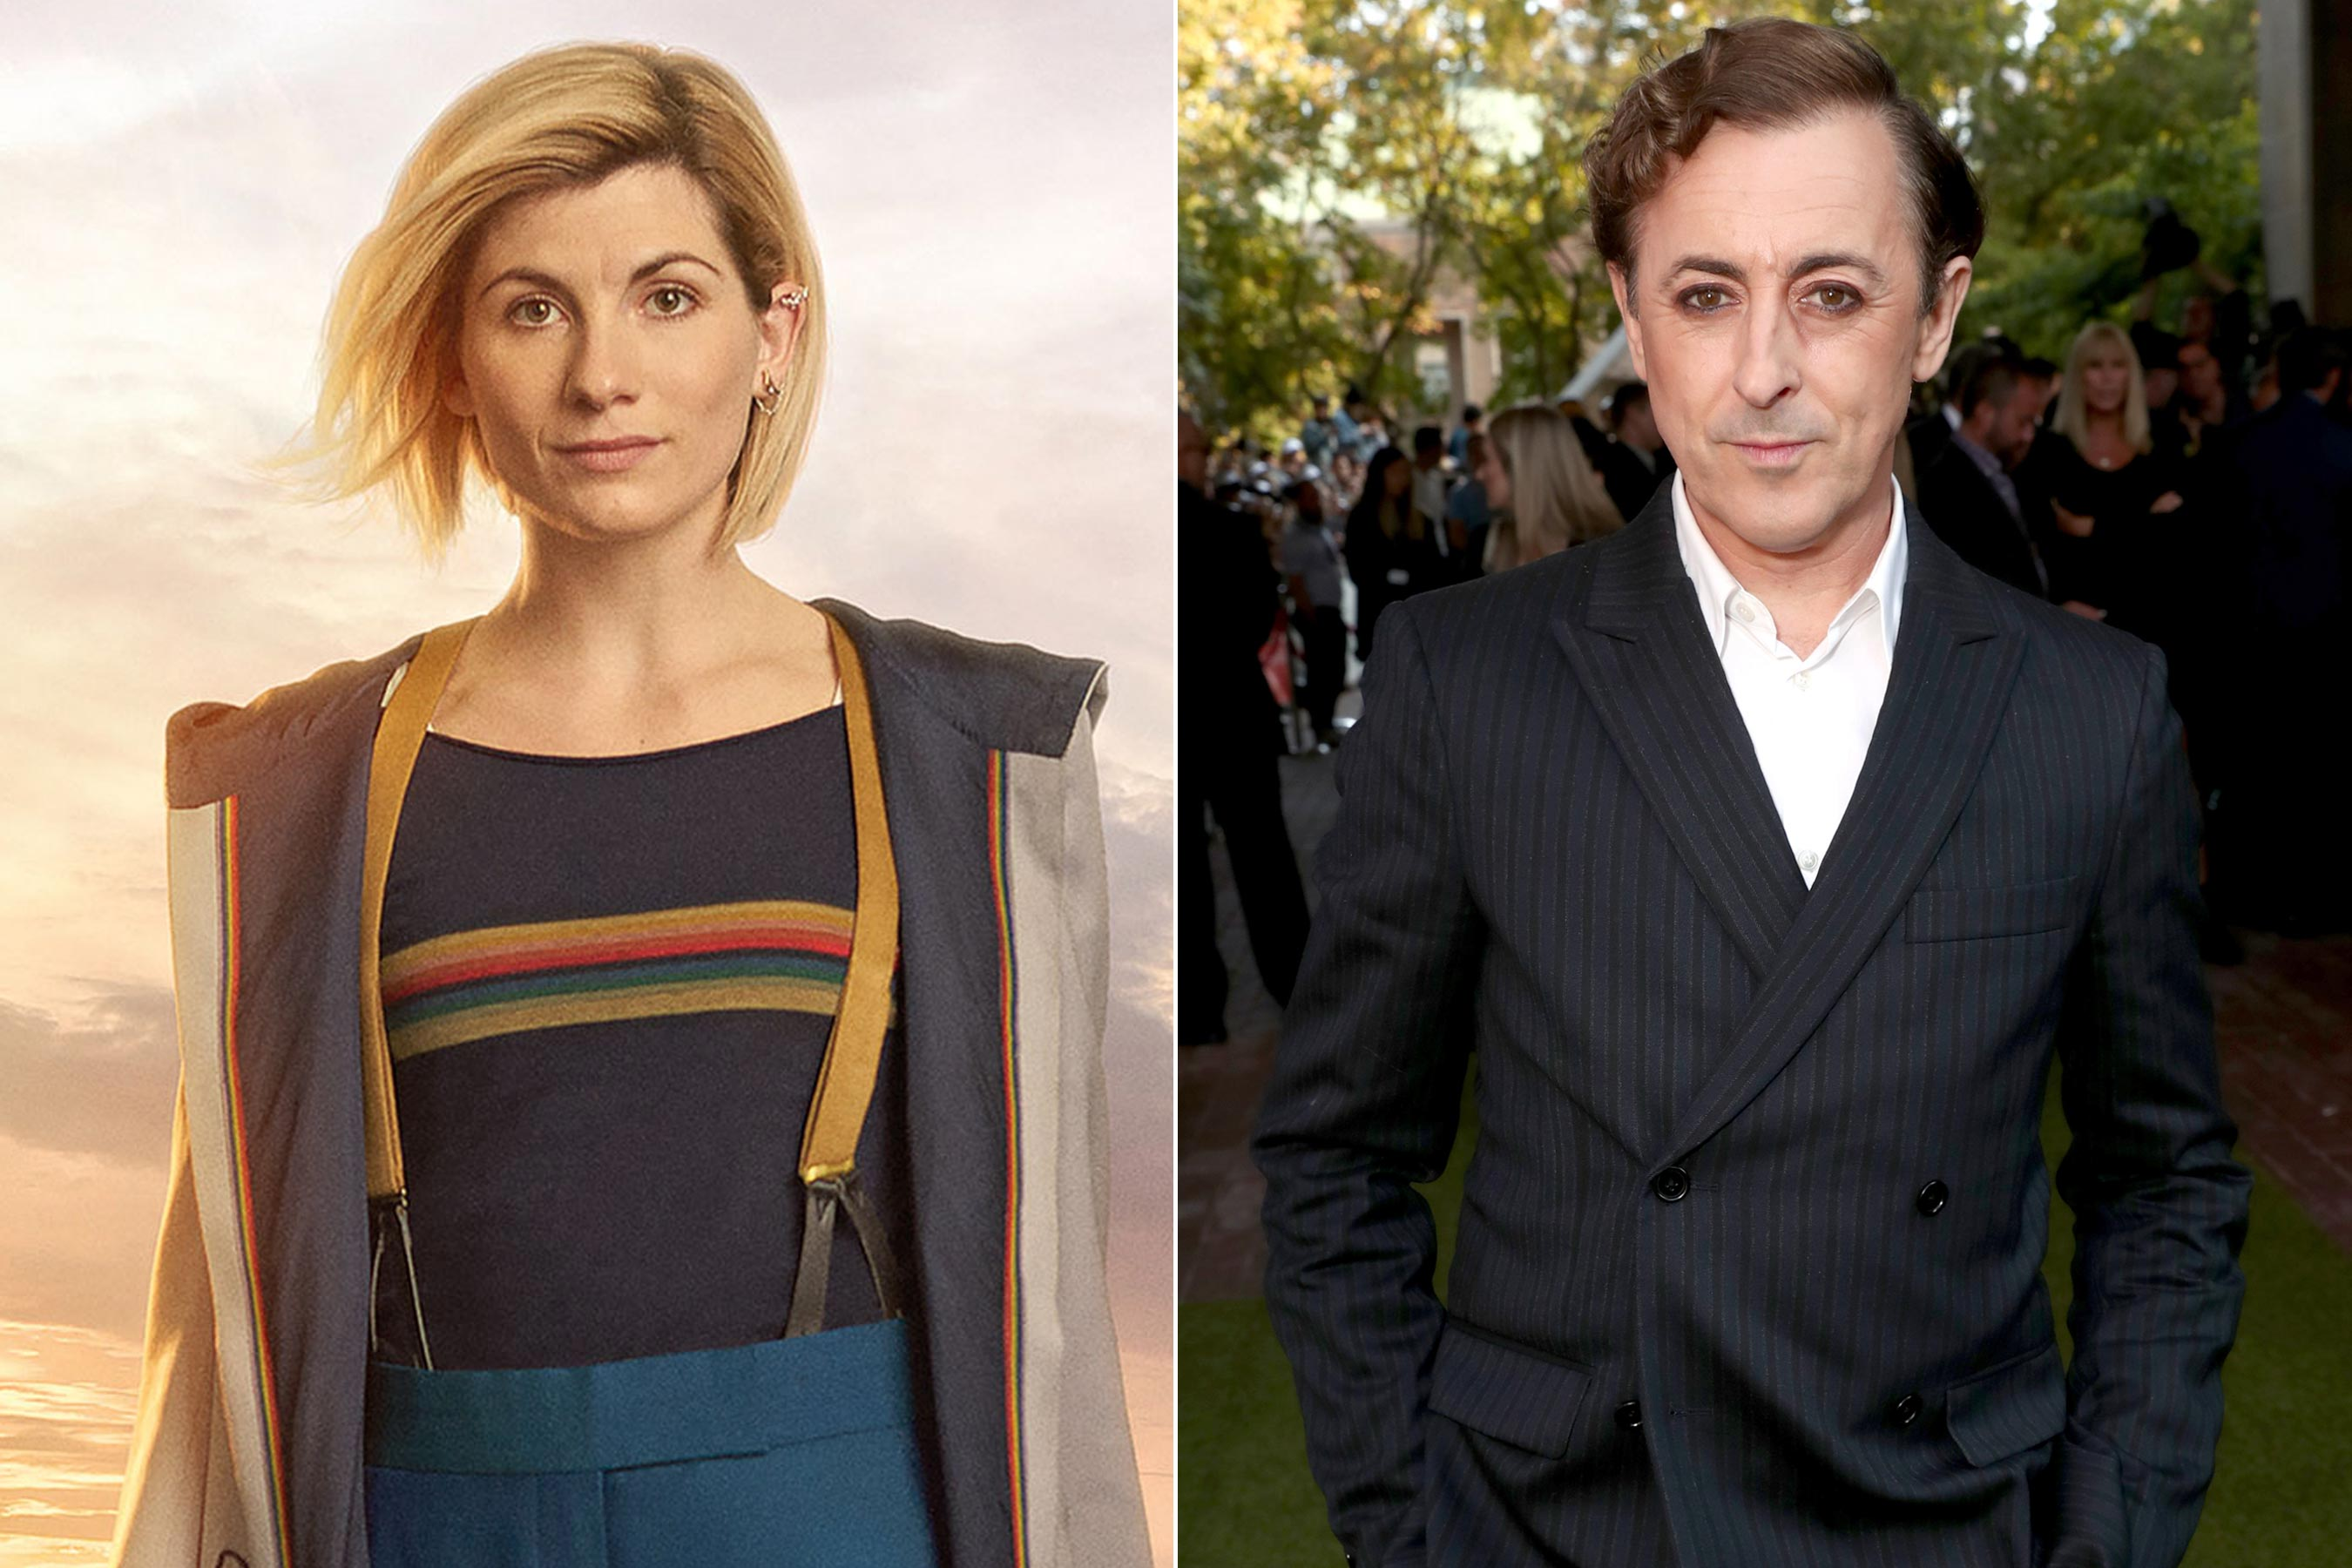 Doctor Who: Alan Cumming to play nice baddie on Jodie Whittaker season